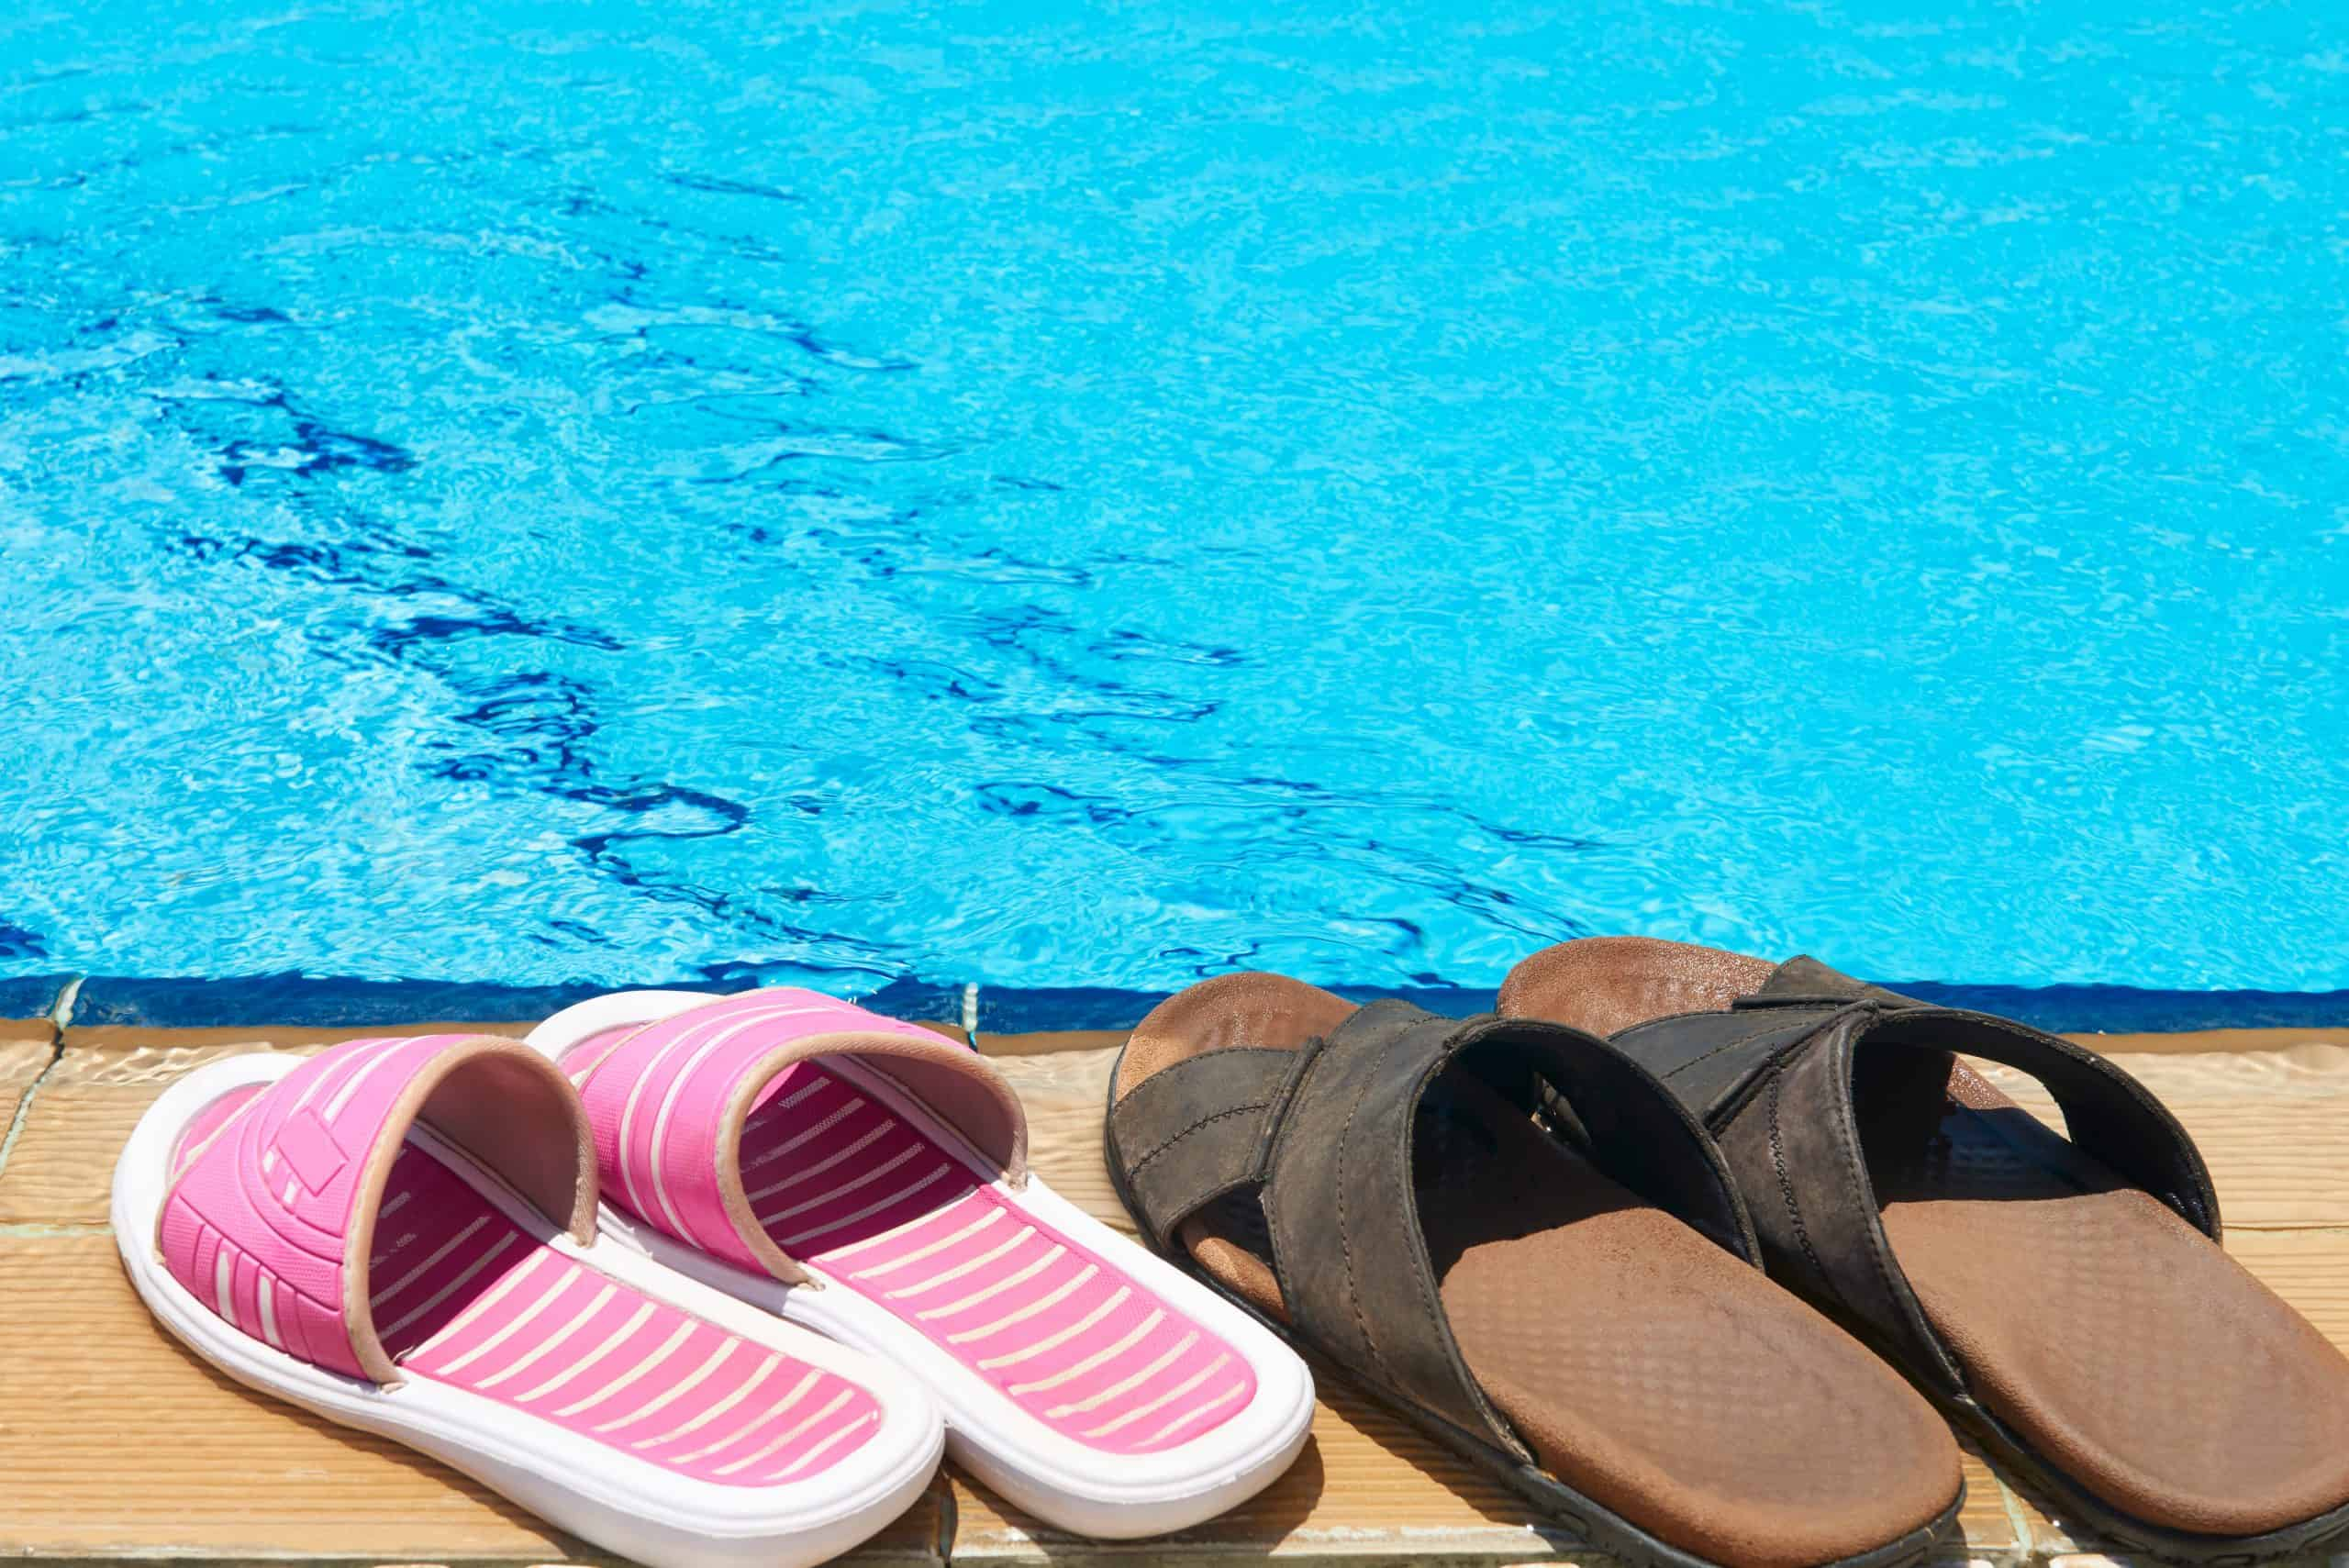 slides shoes by the pool